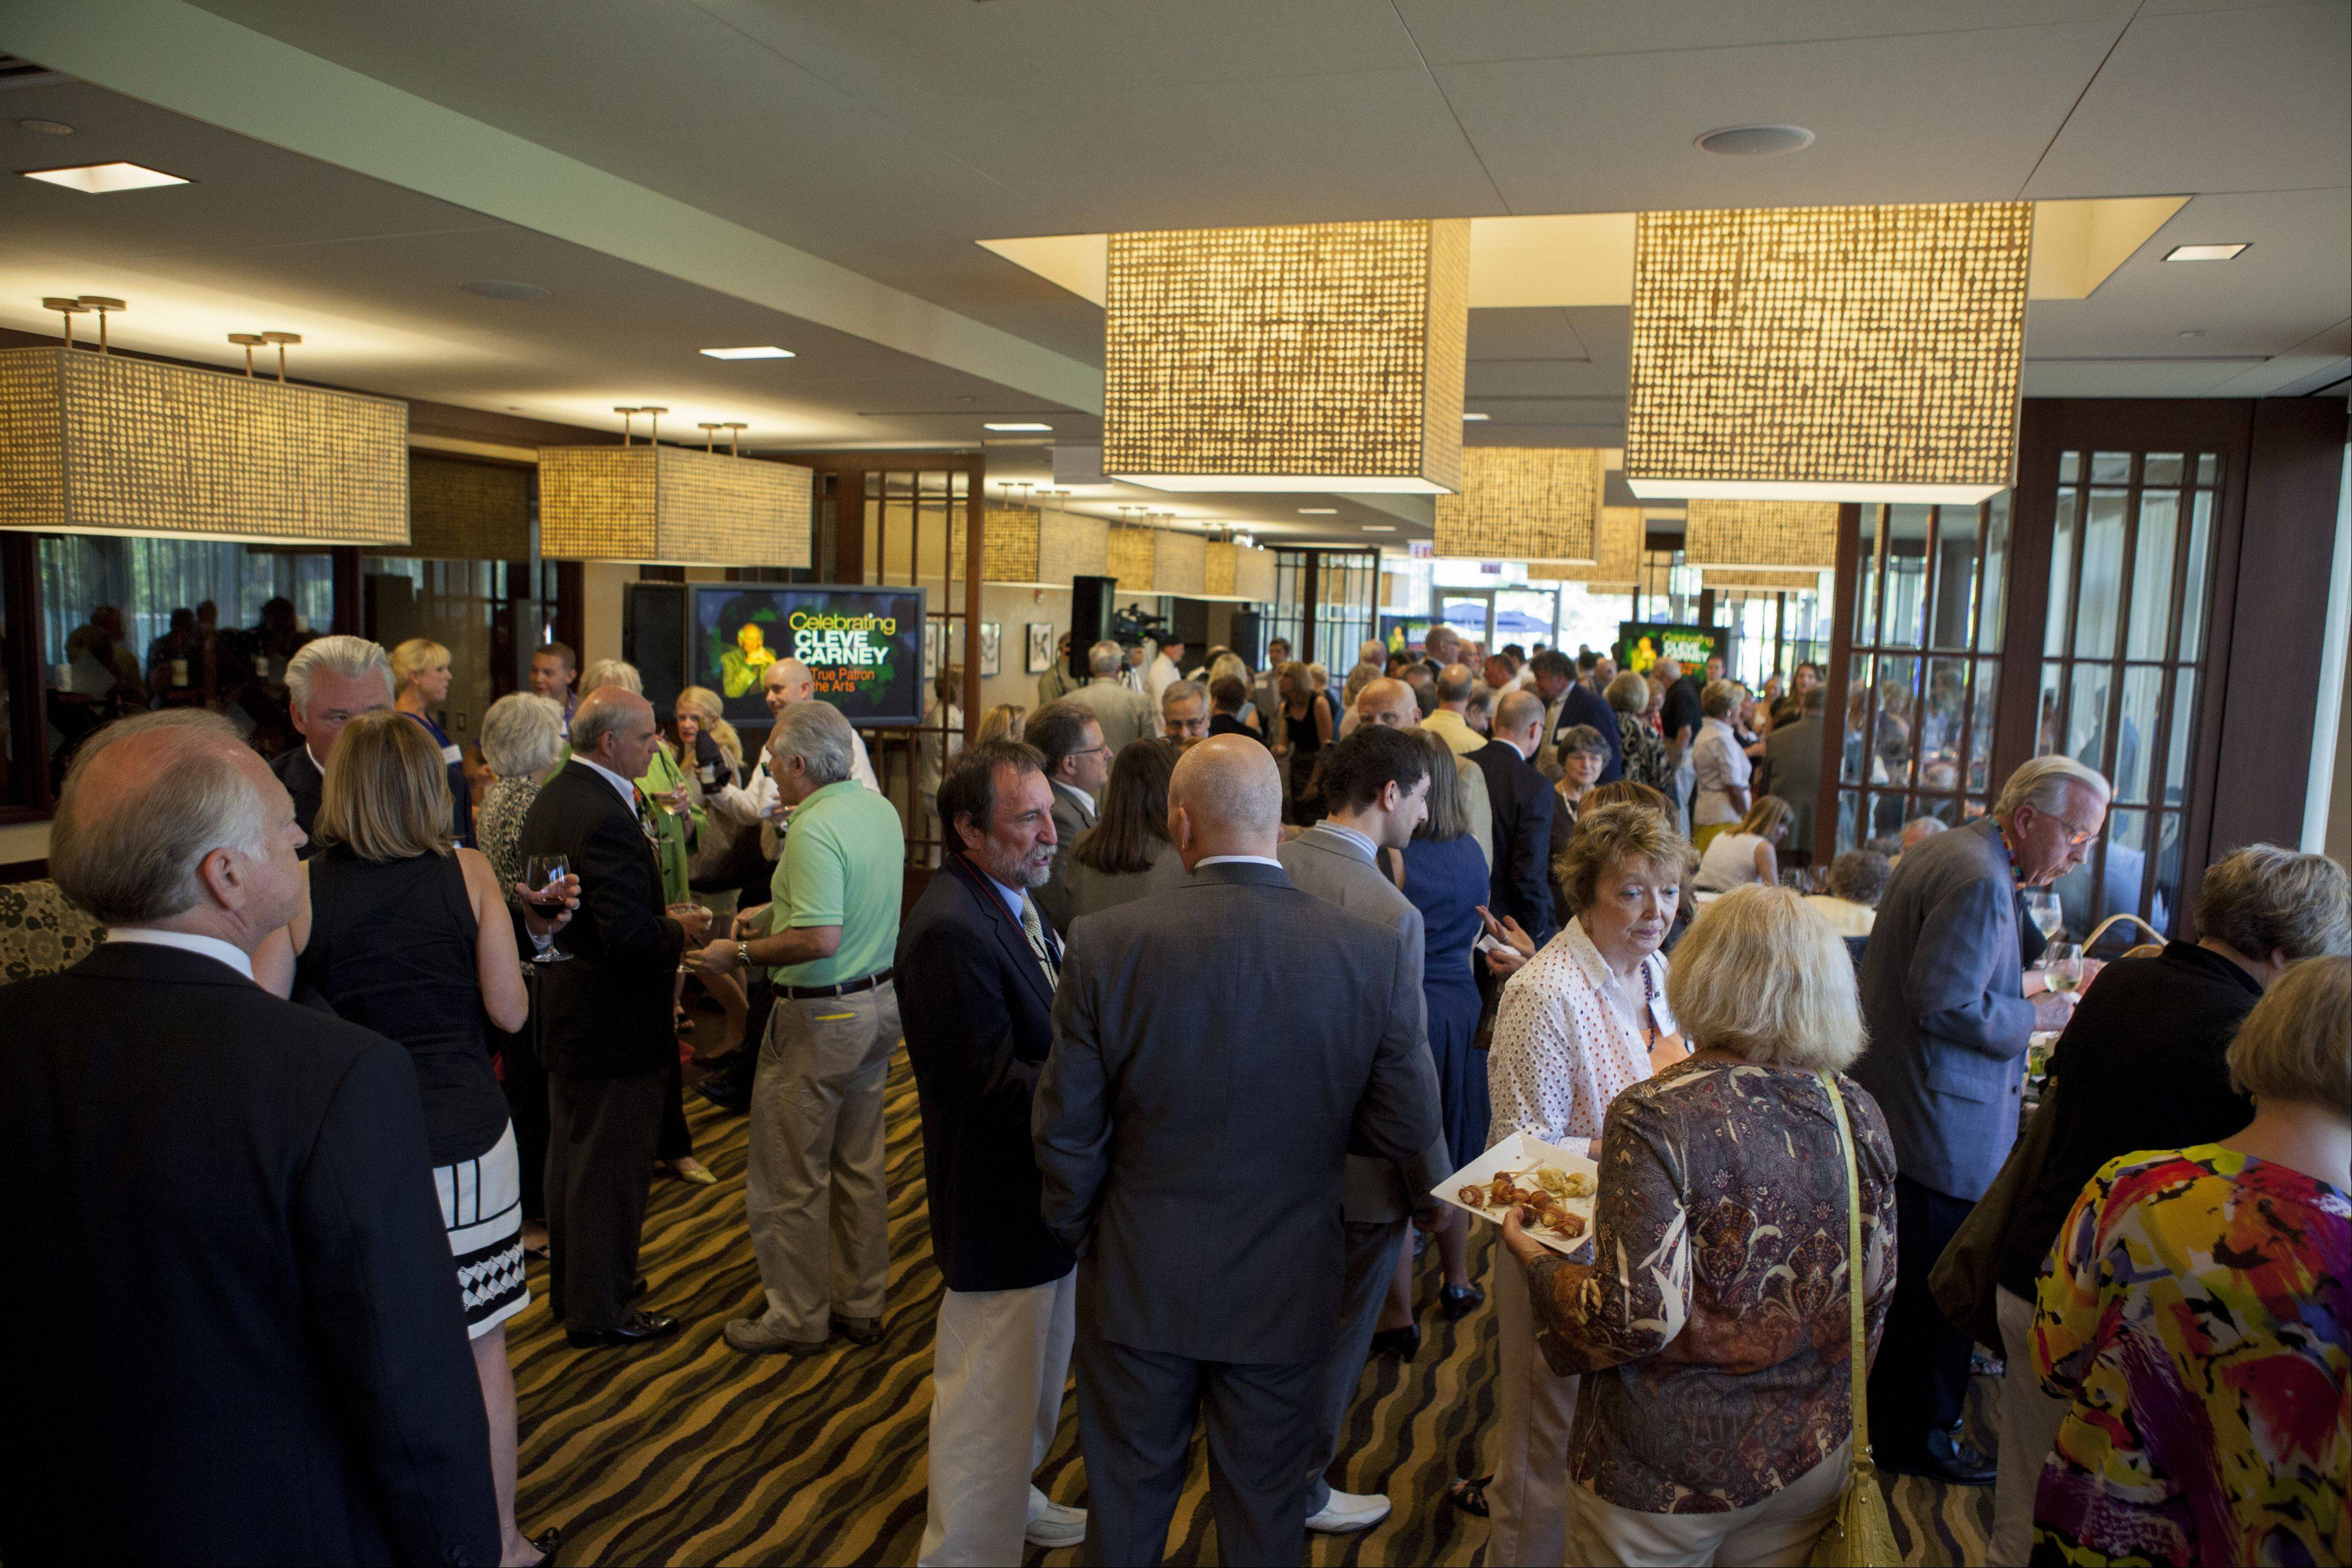 College of DuPage announced the largest gift of $1 million in its 45-year history Thursday night. Friends, family, and patrons of College of Dupage visit with each other during a celebration of Cleve Carney.